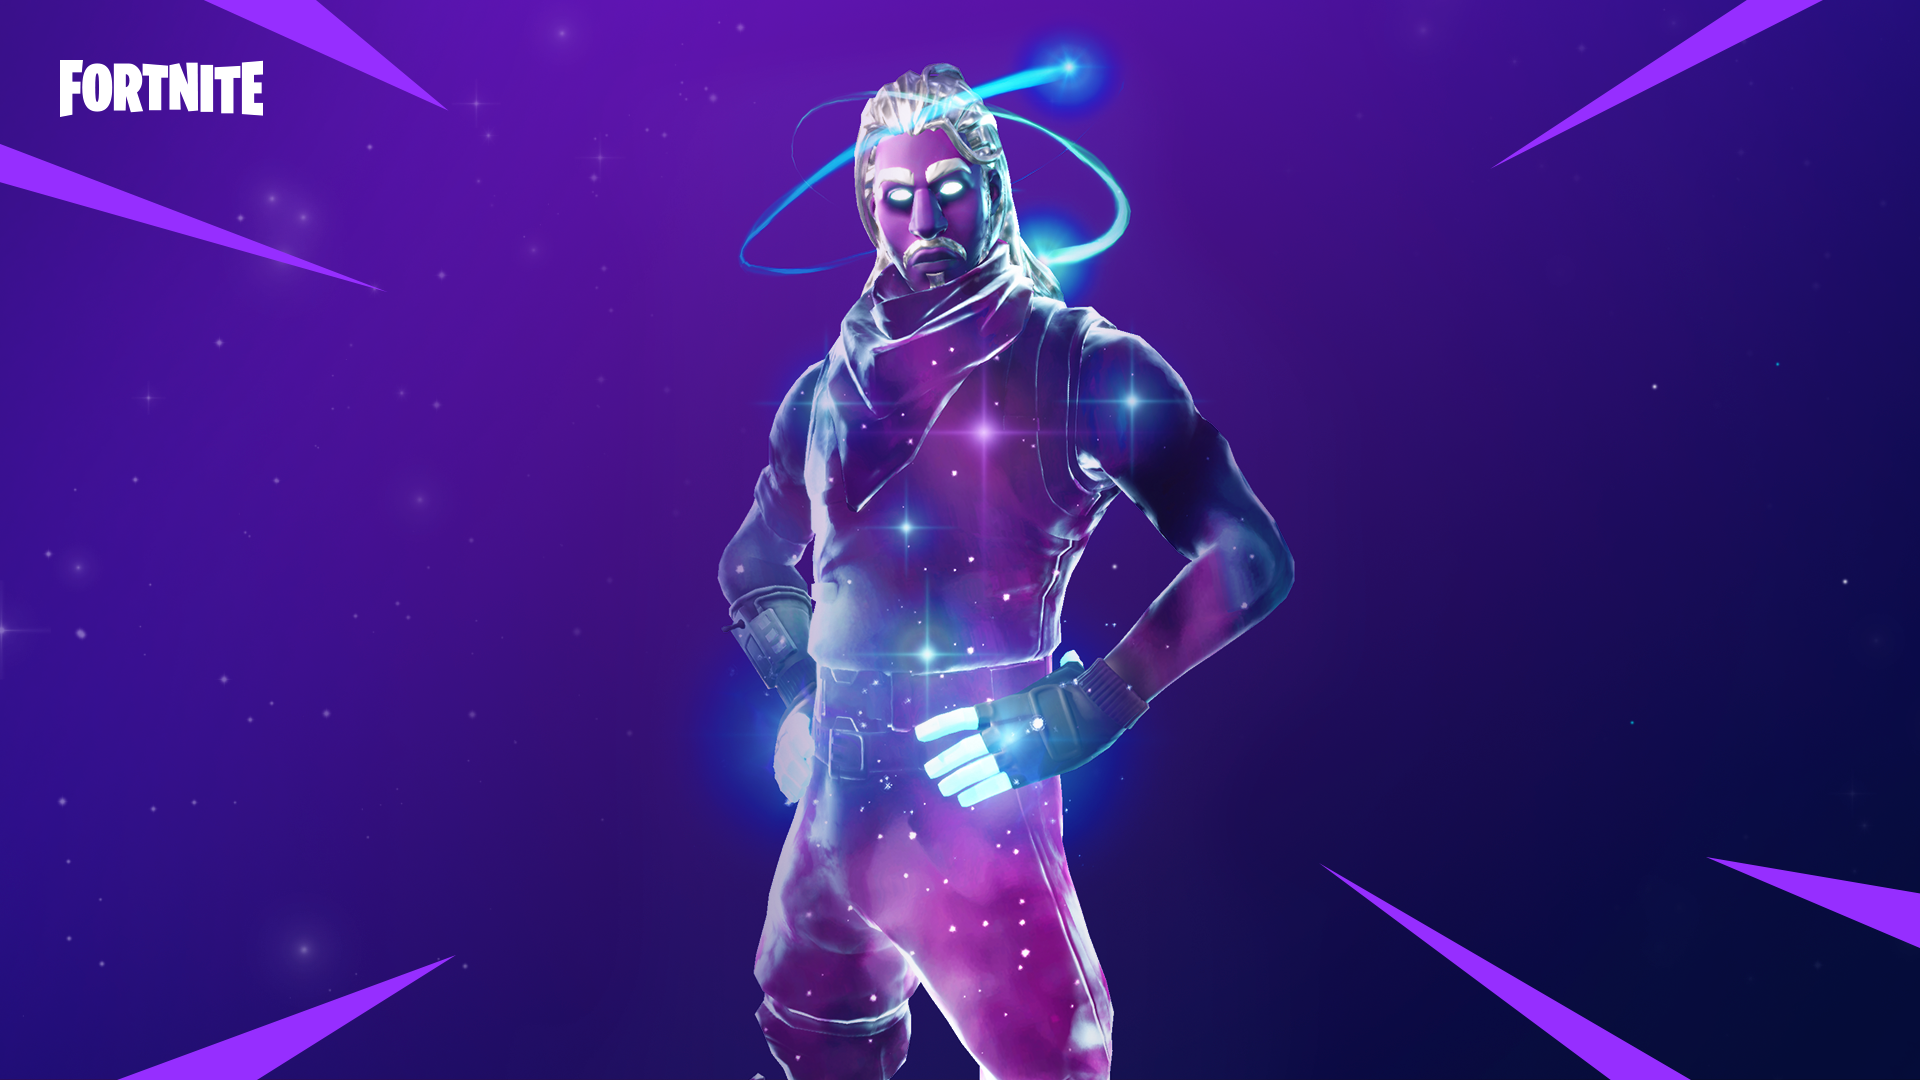 Fortnite-Galaxy-Skin